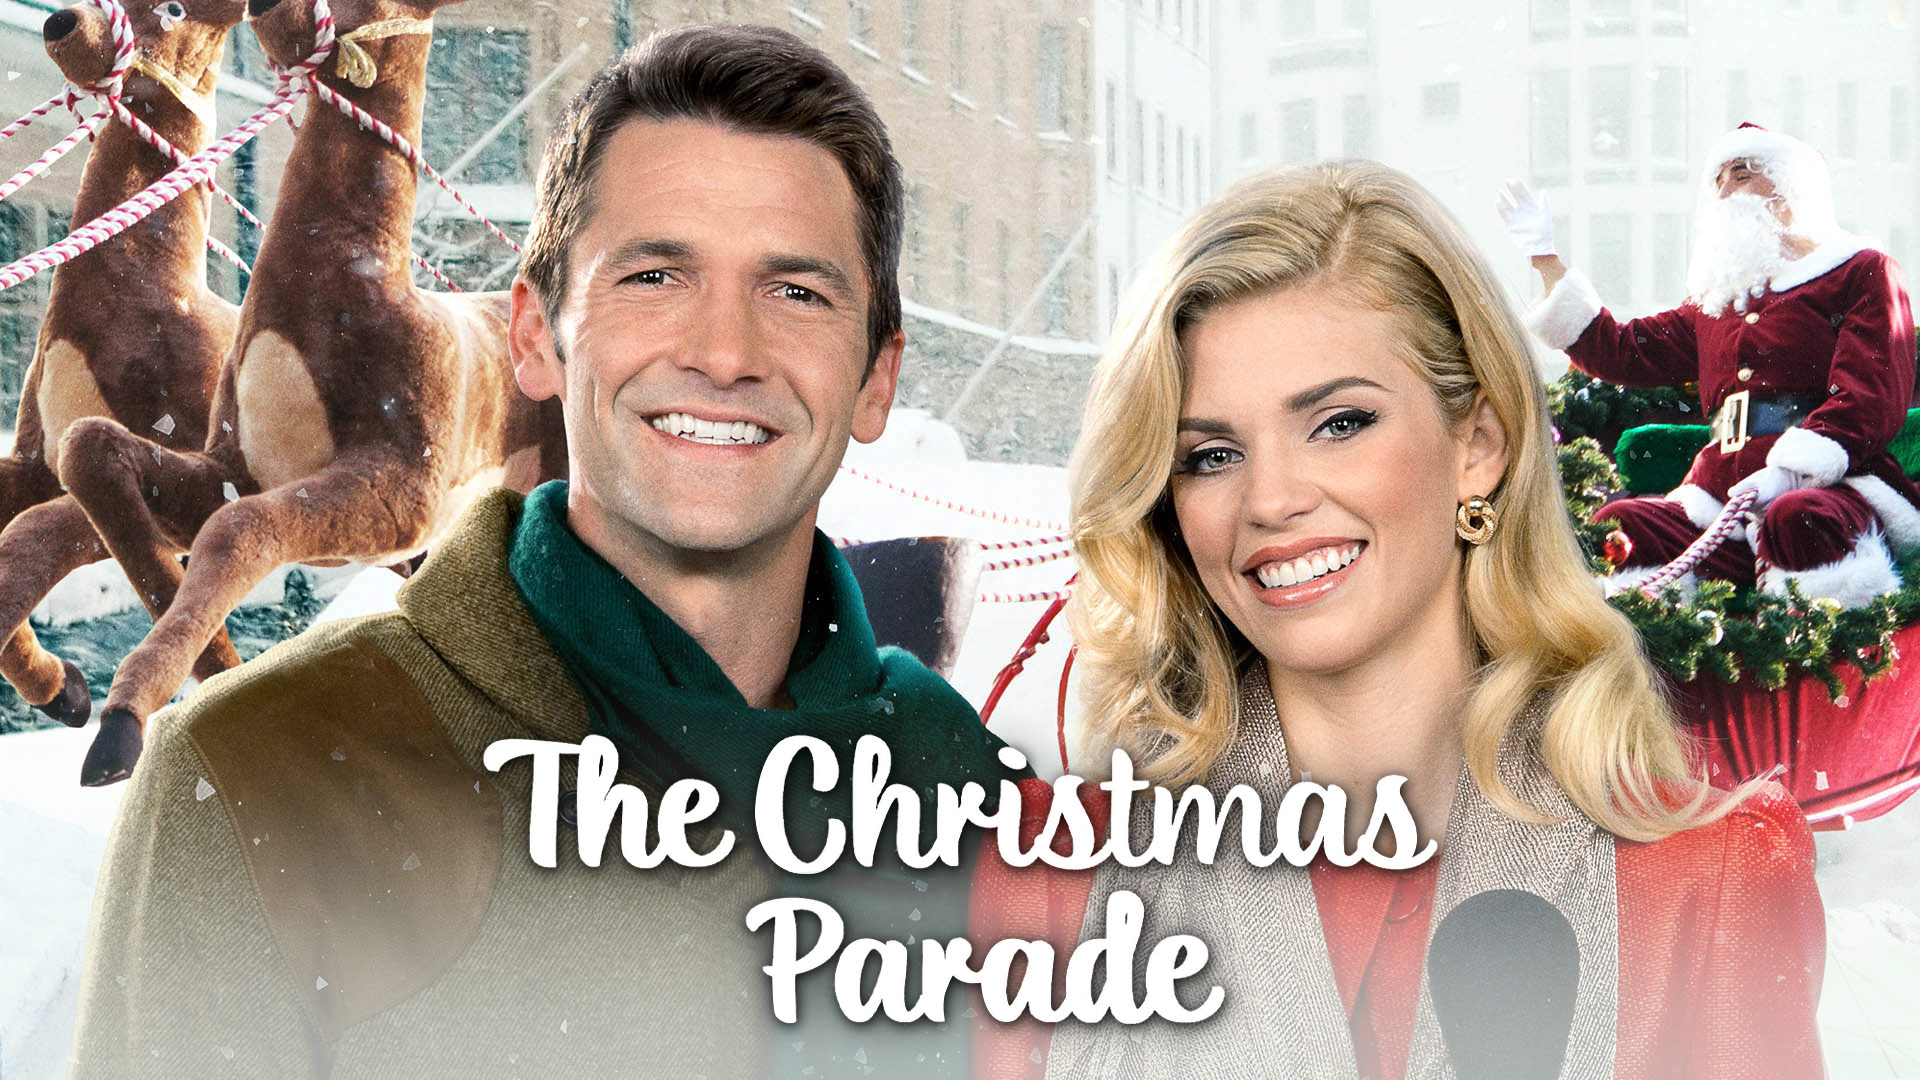 _DUPE_The Christmas Parade